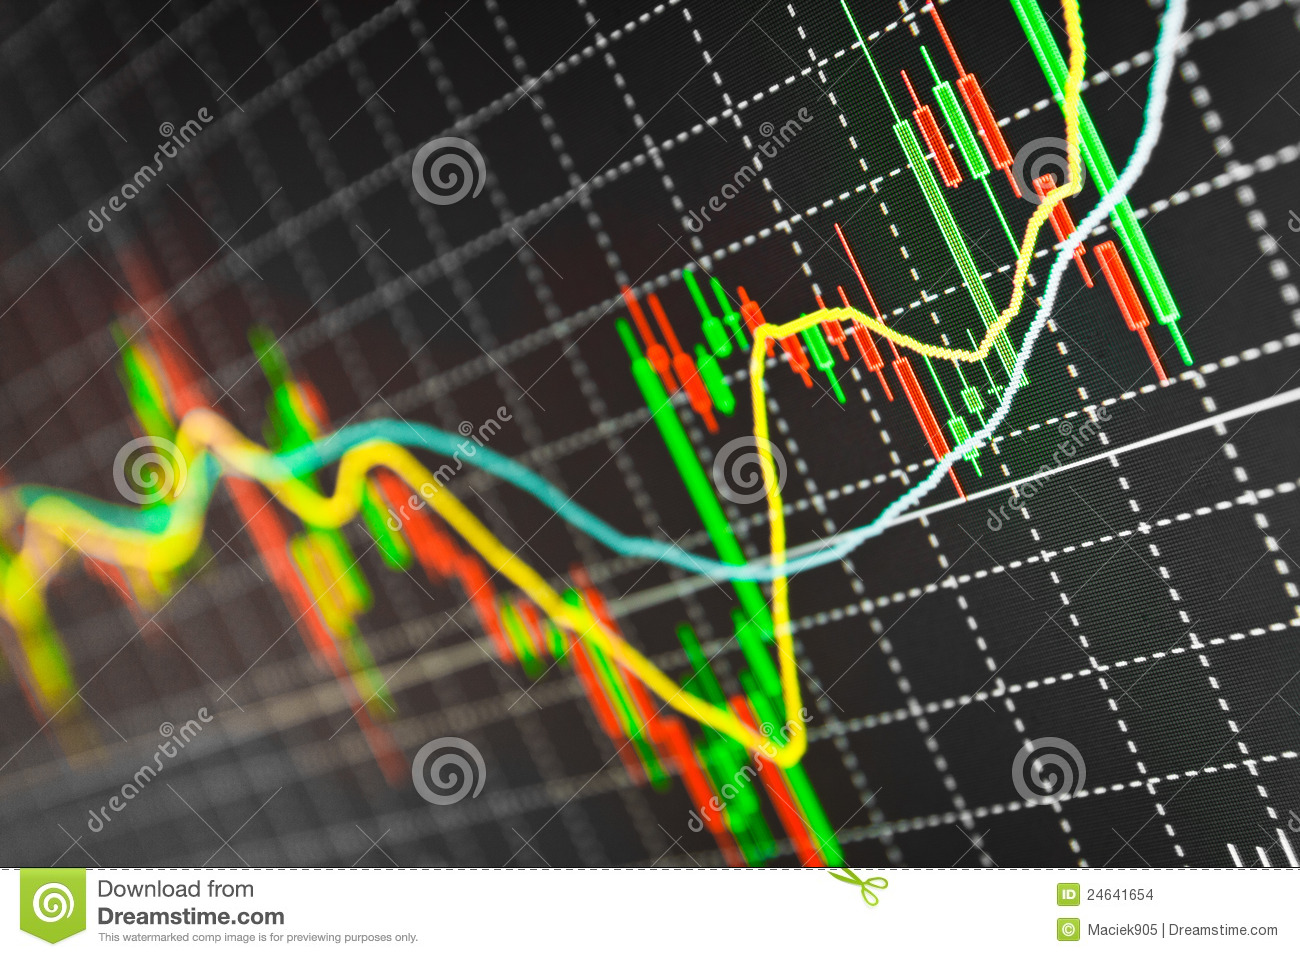 c map charts download with Stock Images  Puter Monitor Stock Chart Image24641654 on Presentation  petency Mapping also Stock Images  puter Monitor Stock Chart Image24641654 in addition Clipart Blank Thermometer 4 further 116501 in addition Stock Images Graph Negatively Decreasing Image28111634.